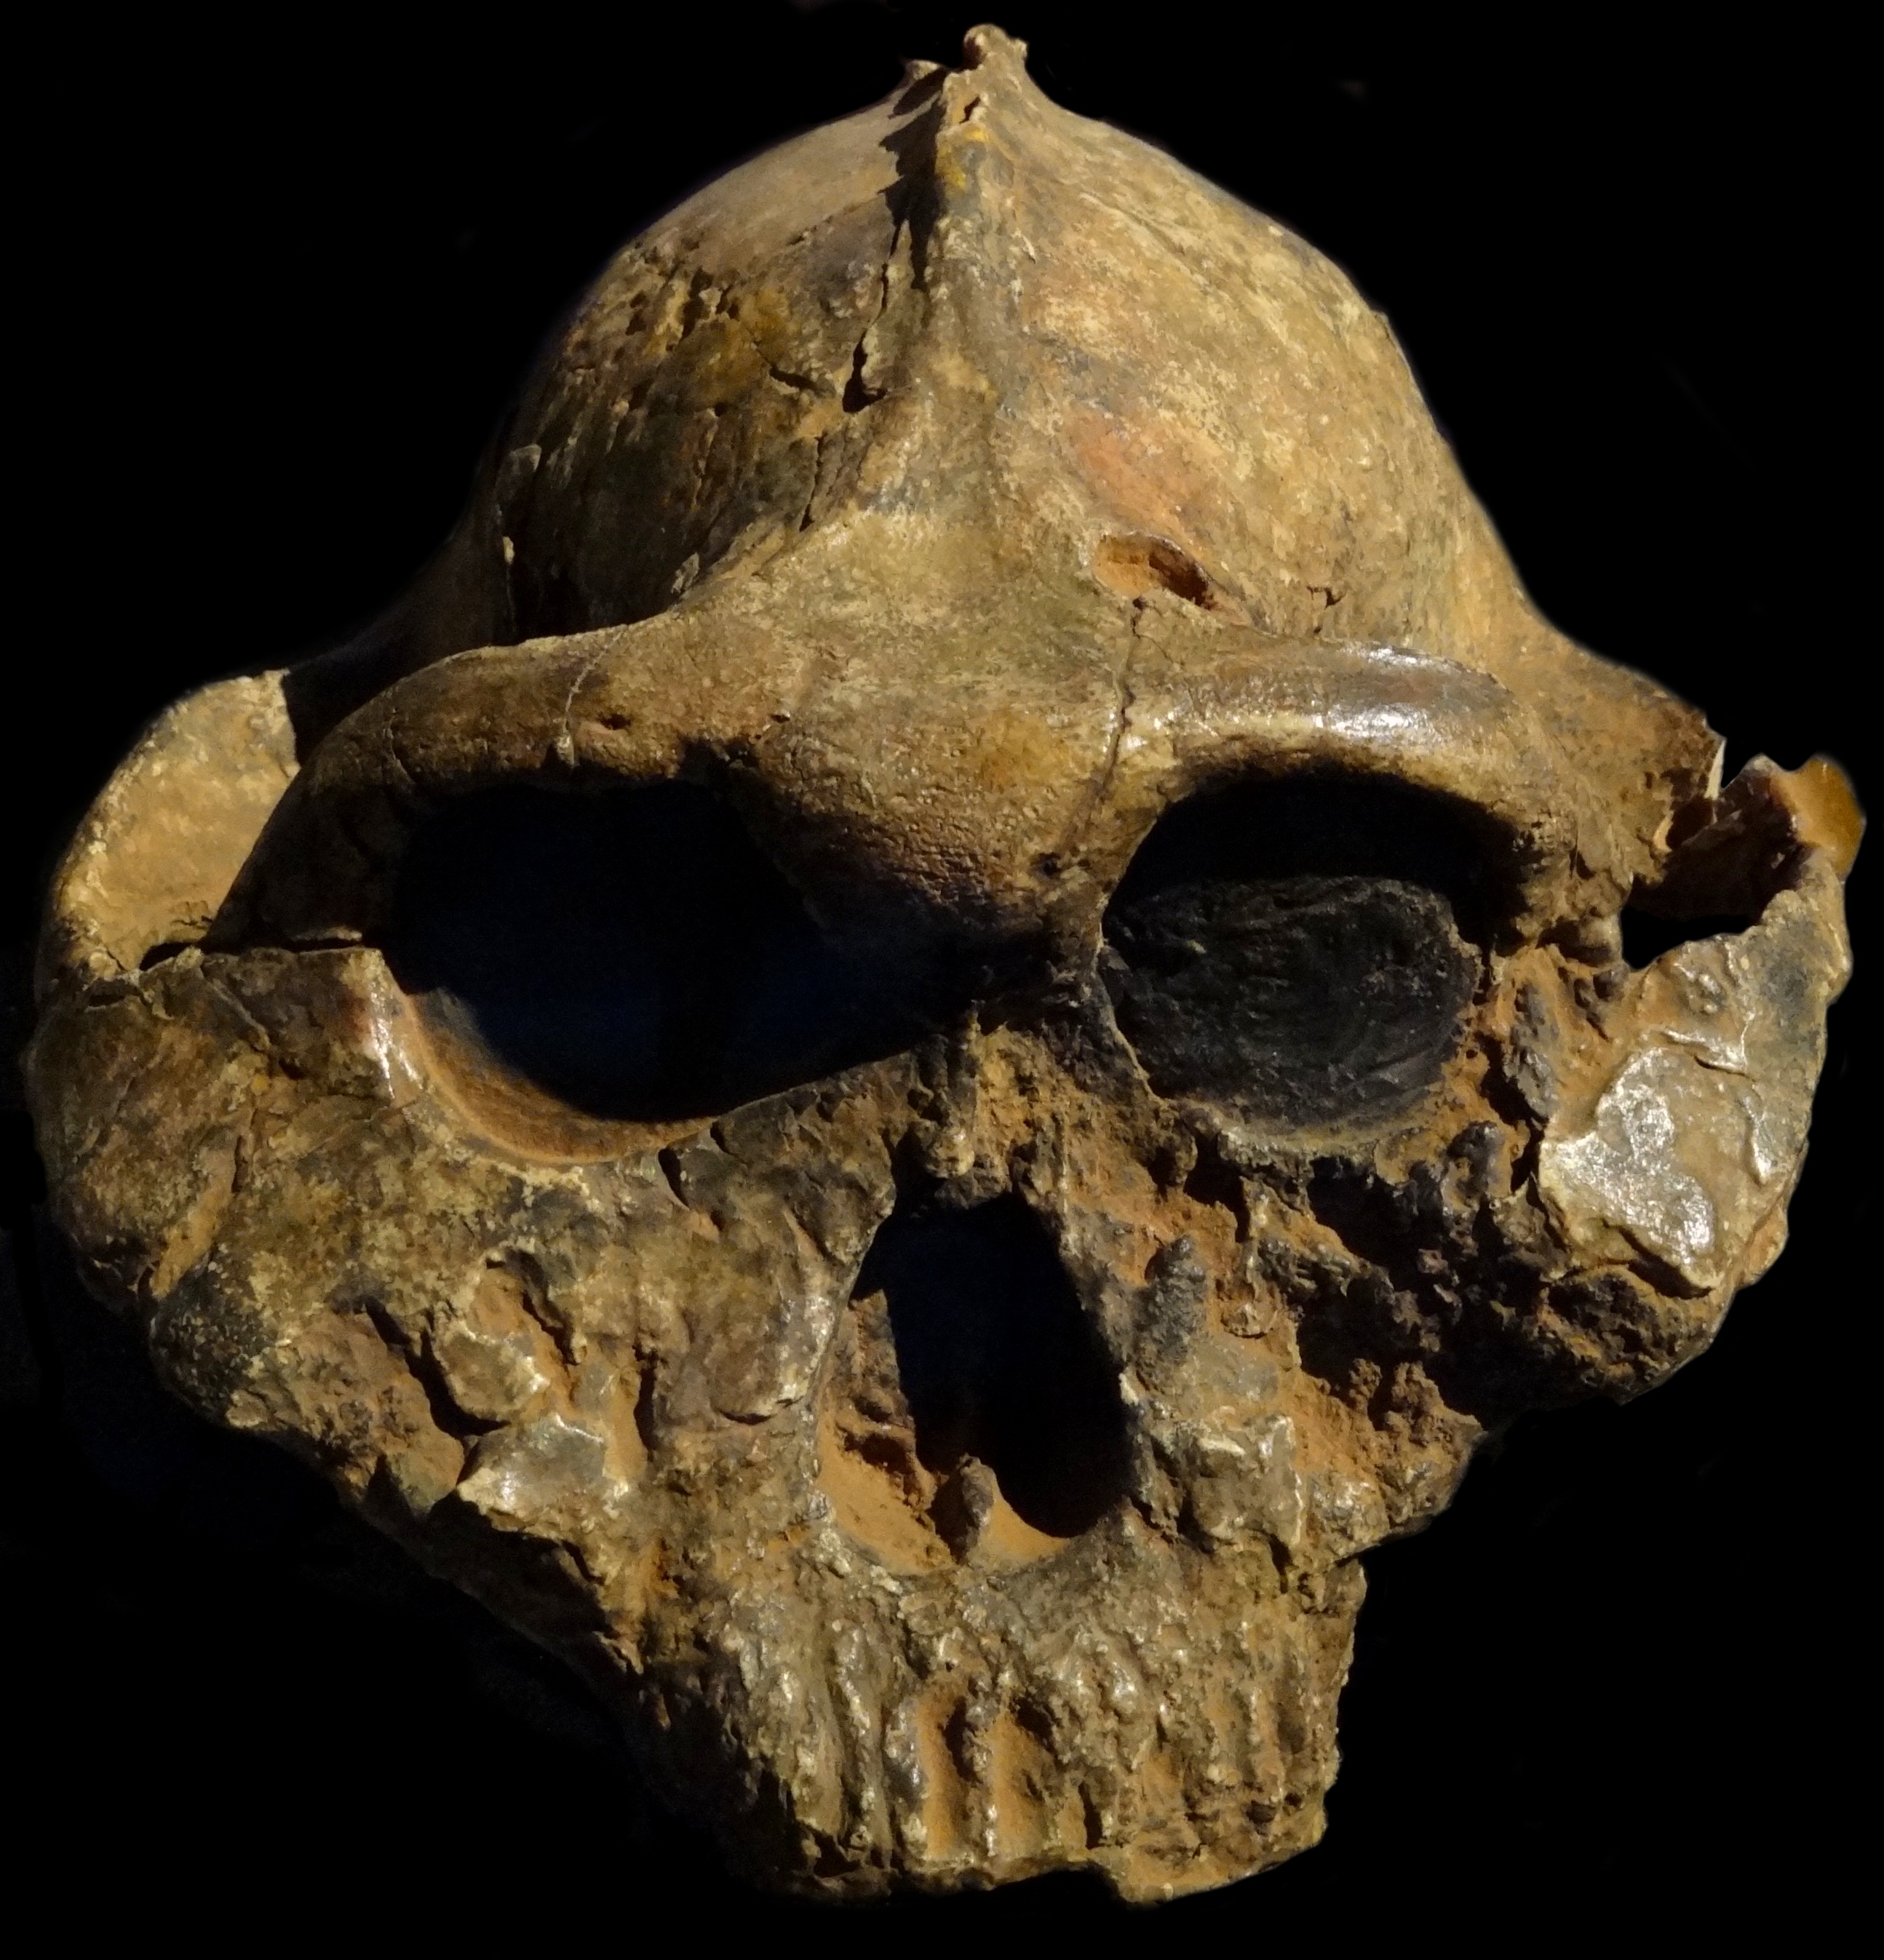 https://upload.wikimedia.org/wikipedia/commons/d/db/Paranthropus-boisei-Nairobi.JPG